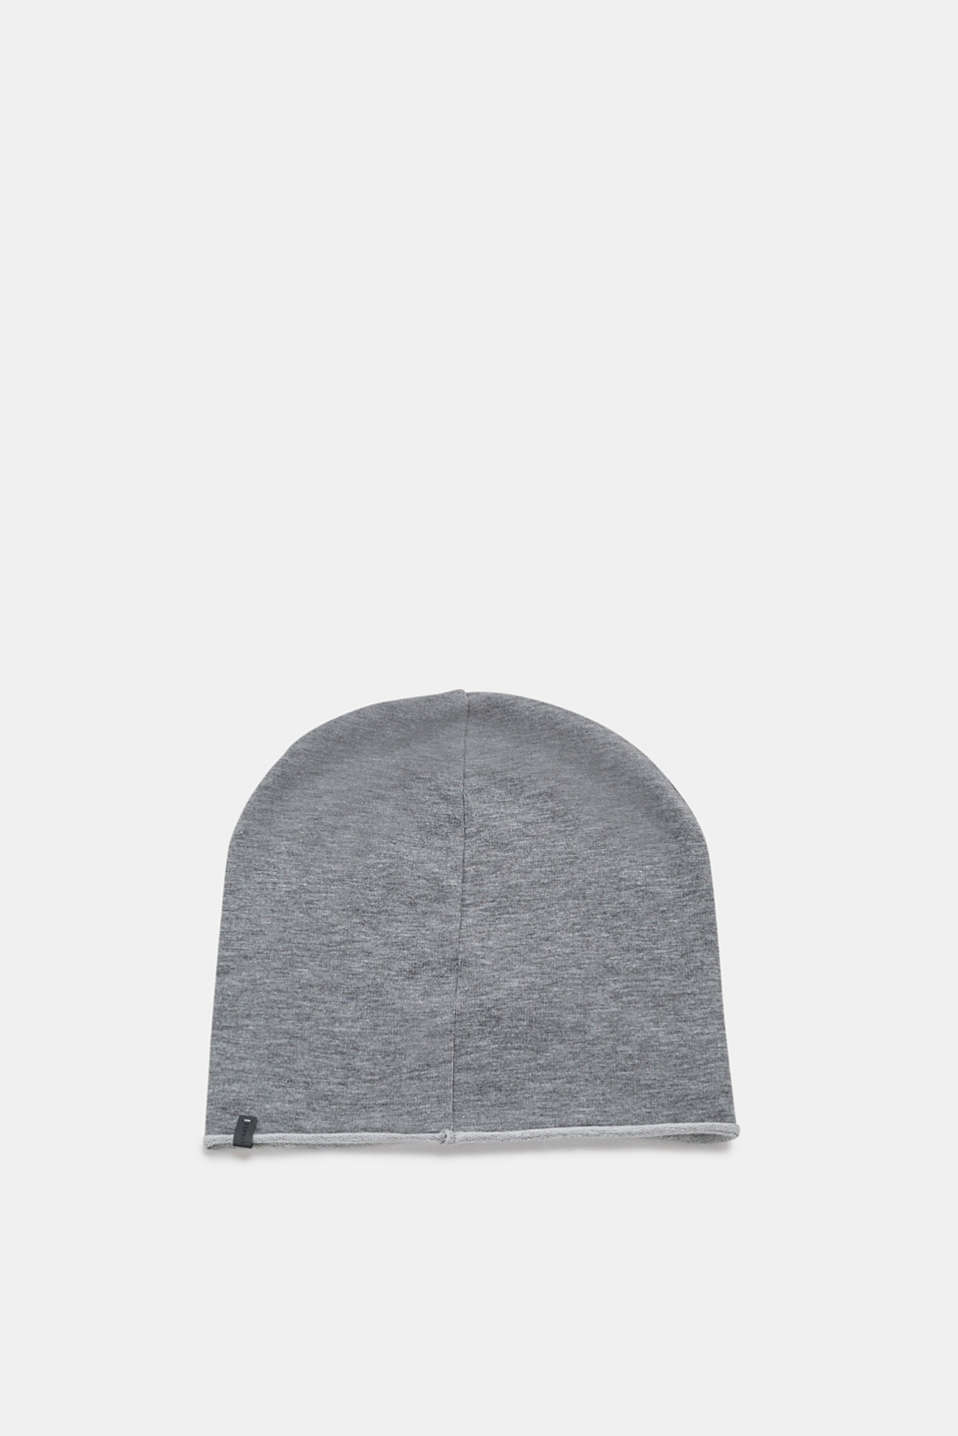 Esprit - Hat with rolled edges, made of jersey